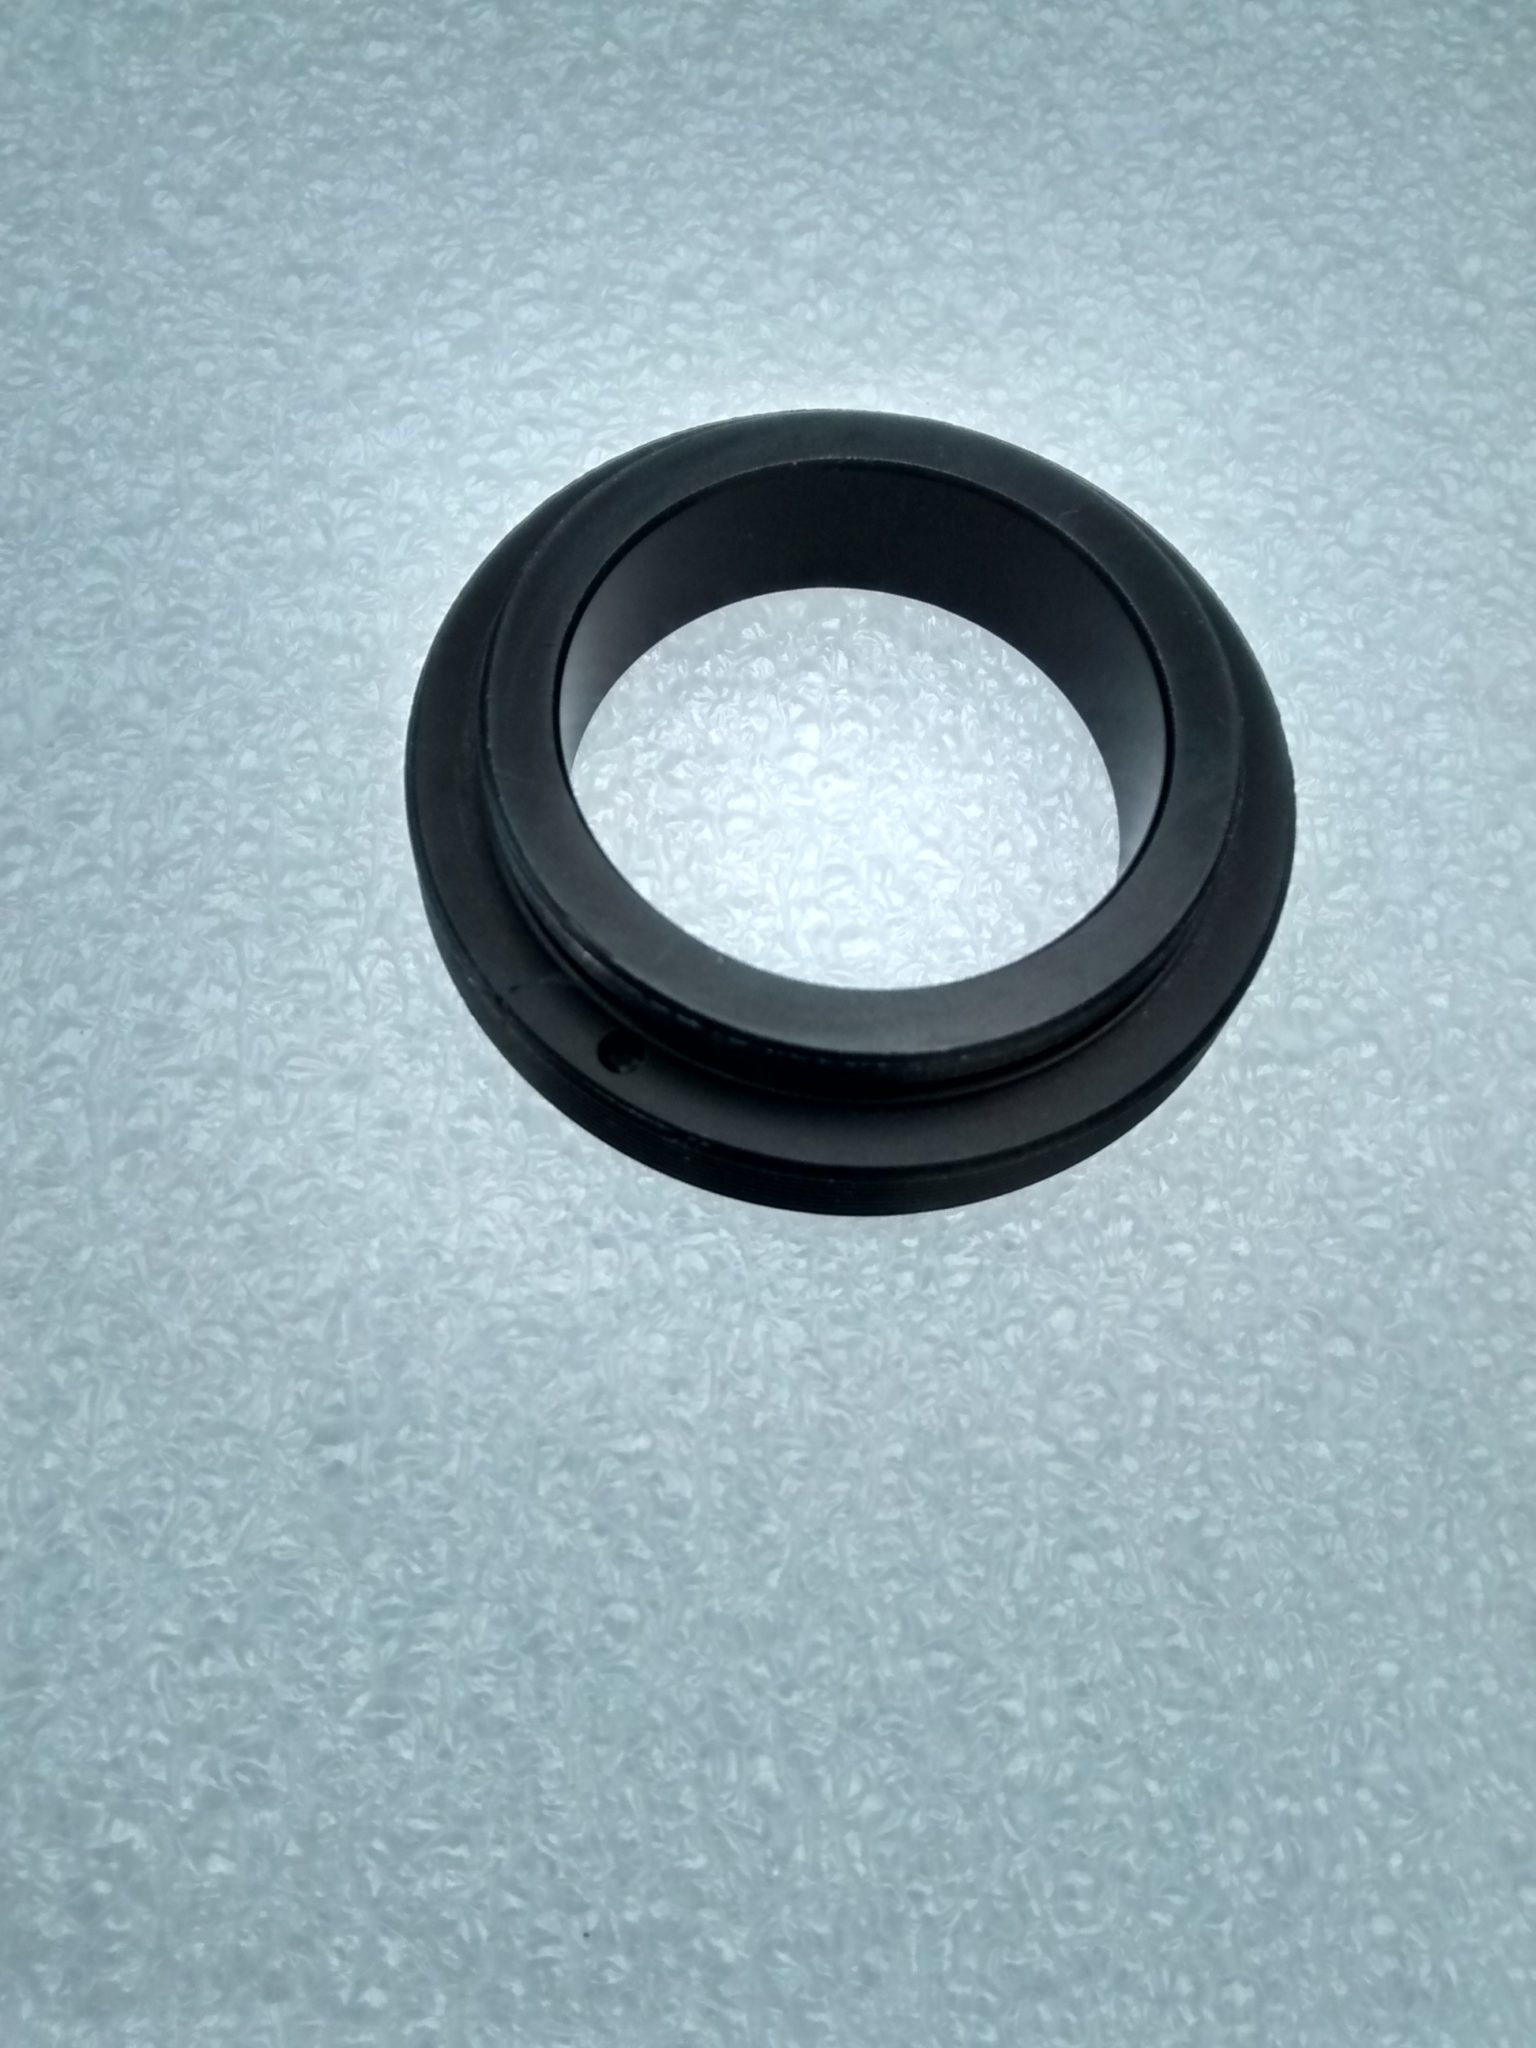 Celestron 1mm T Thread Adapter for Straight Through Finders